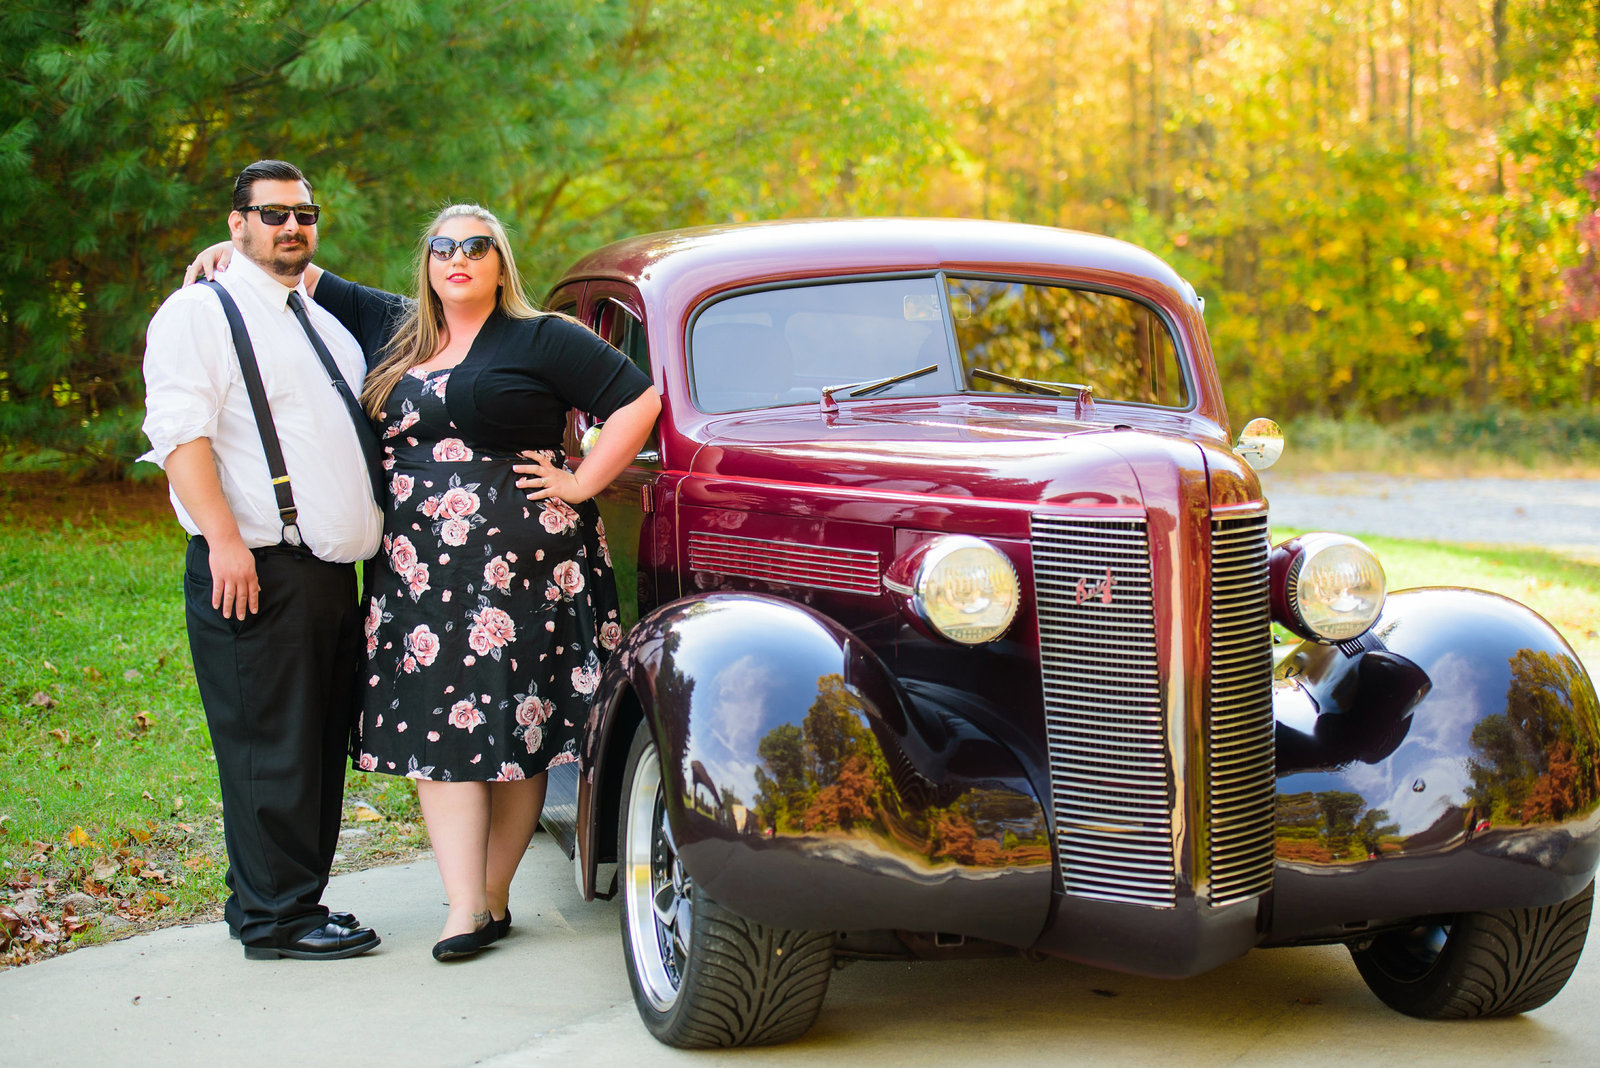 Retro_Pinup_Car_engagement_session_Nj001